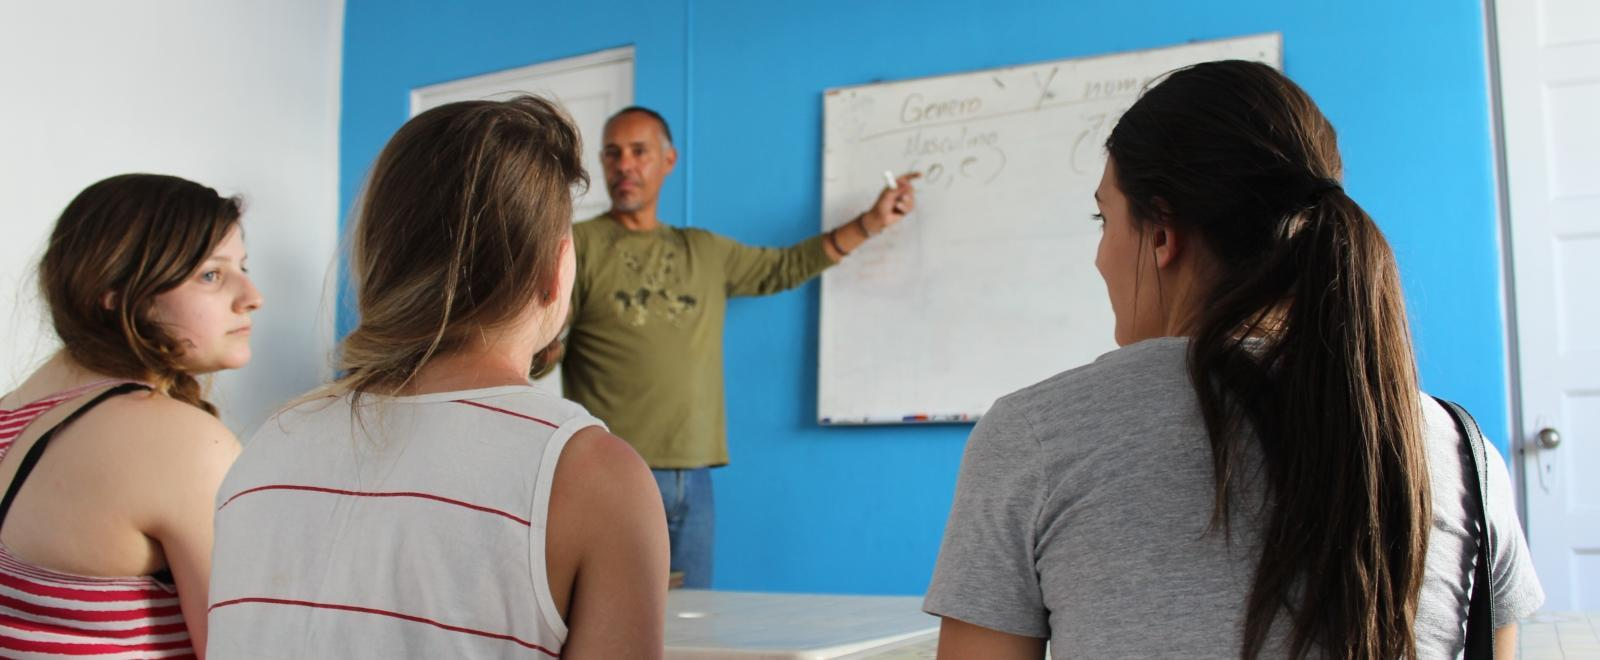 On the Spanish Language Course in Mexico, students receive lessons from a professional tutor.